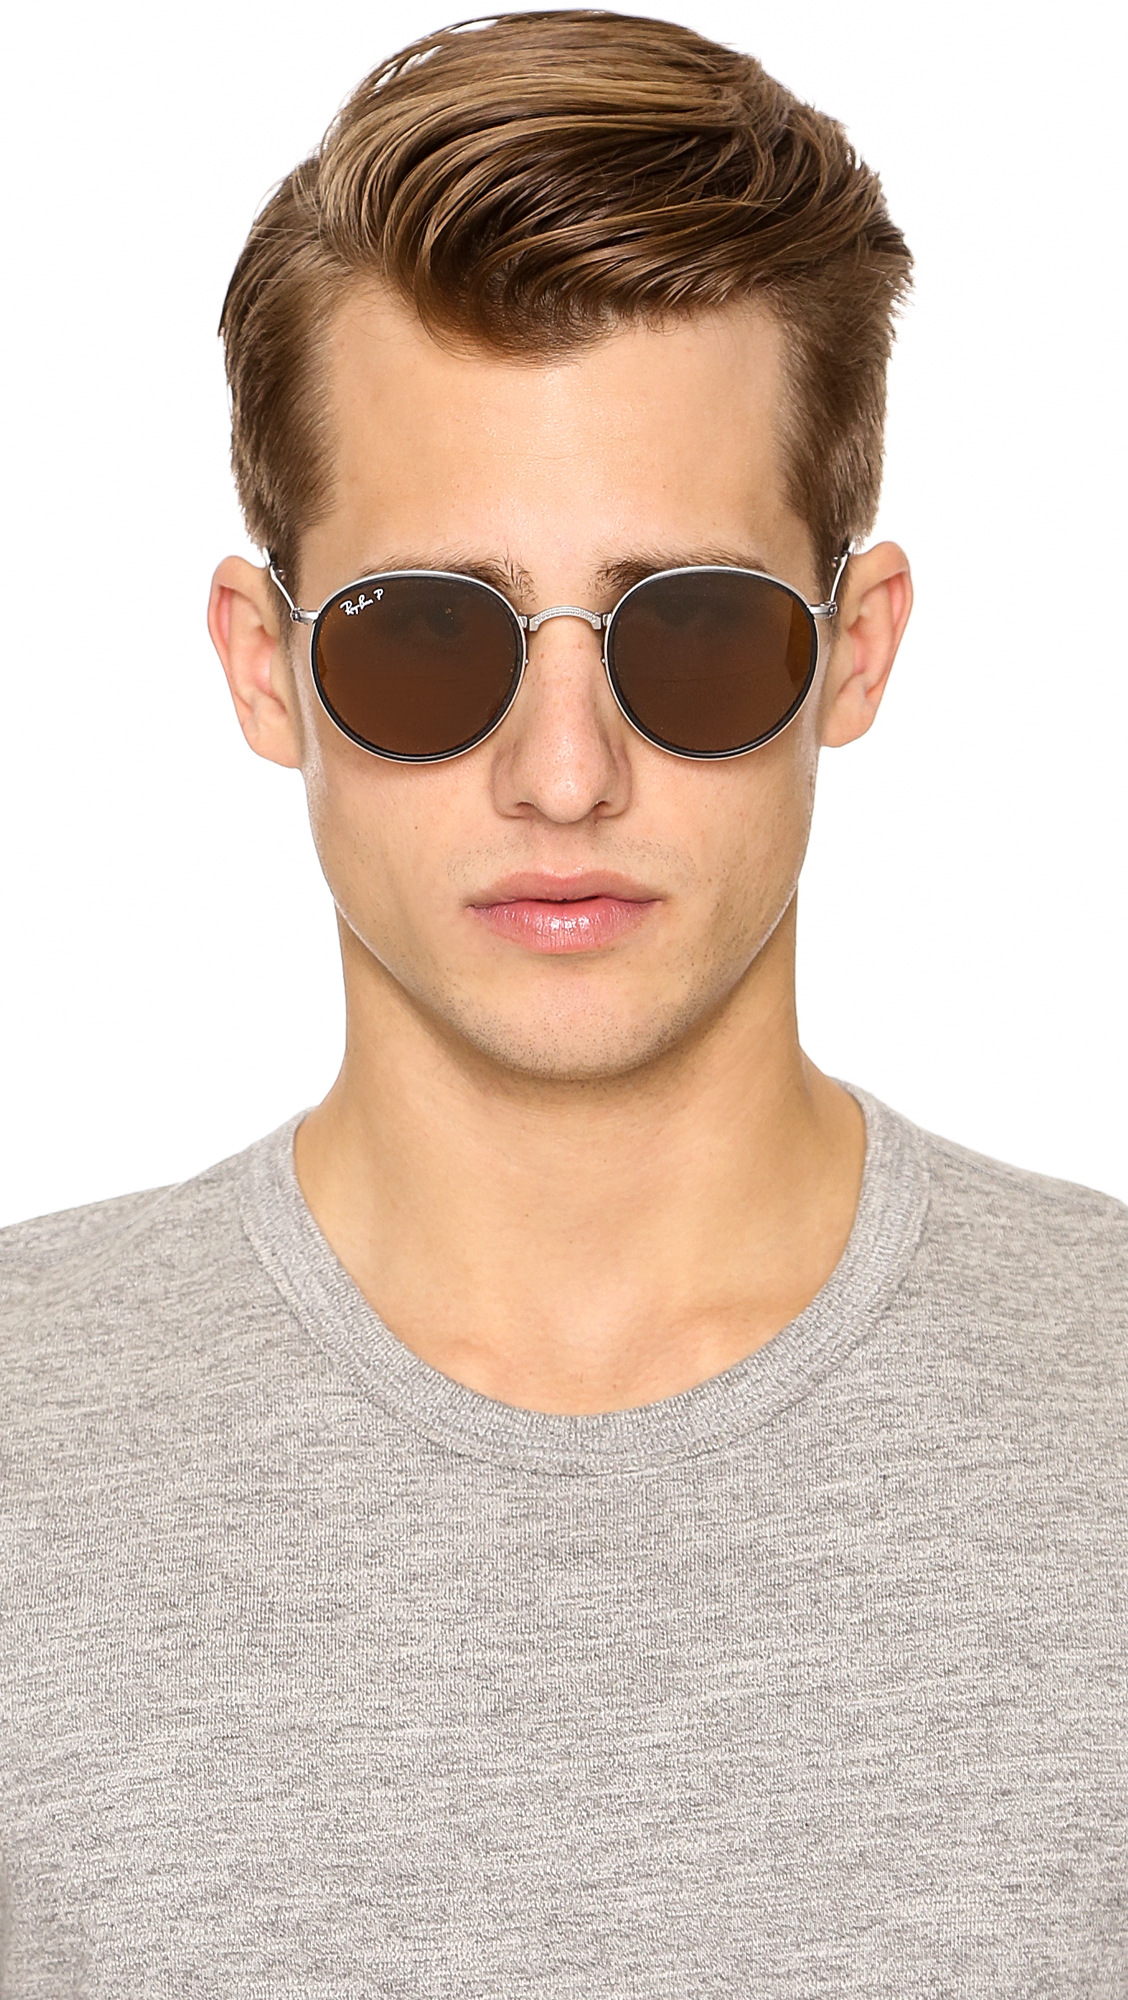 d5a635a1f08 ray ban wayfarer mens polarized sunglasses pink polarized ray bans on a face